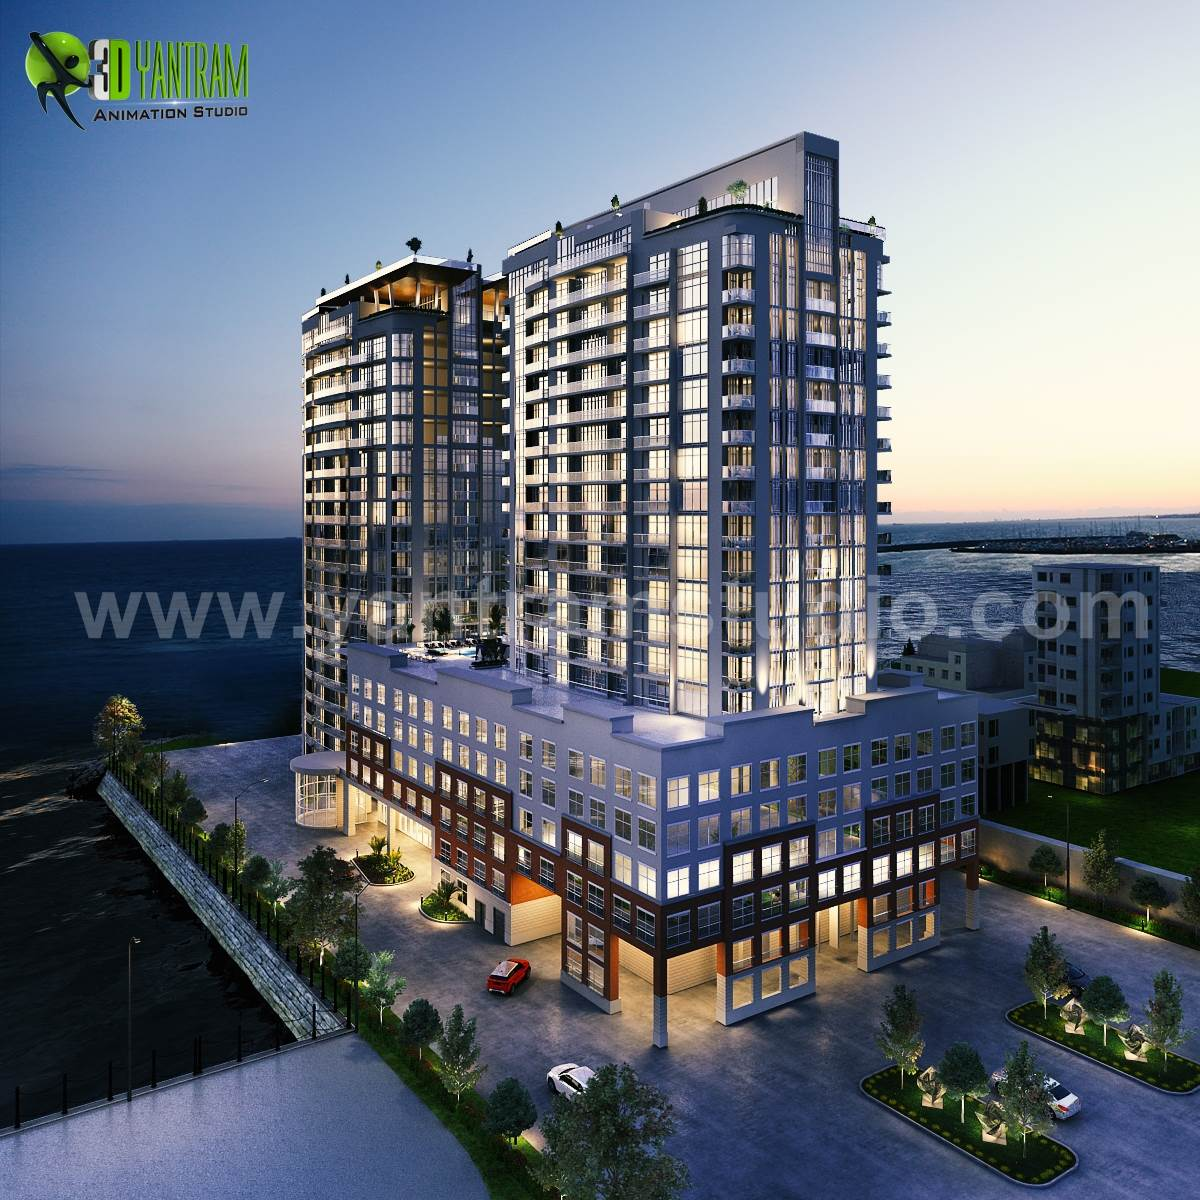 3d-modern-luxury-high-rise-building-exterior-dusk-view-architectural-animation-design-studio.jpg -  by yantramstudio